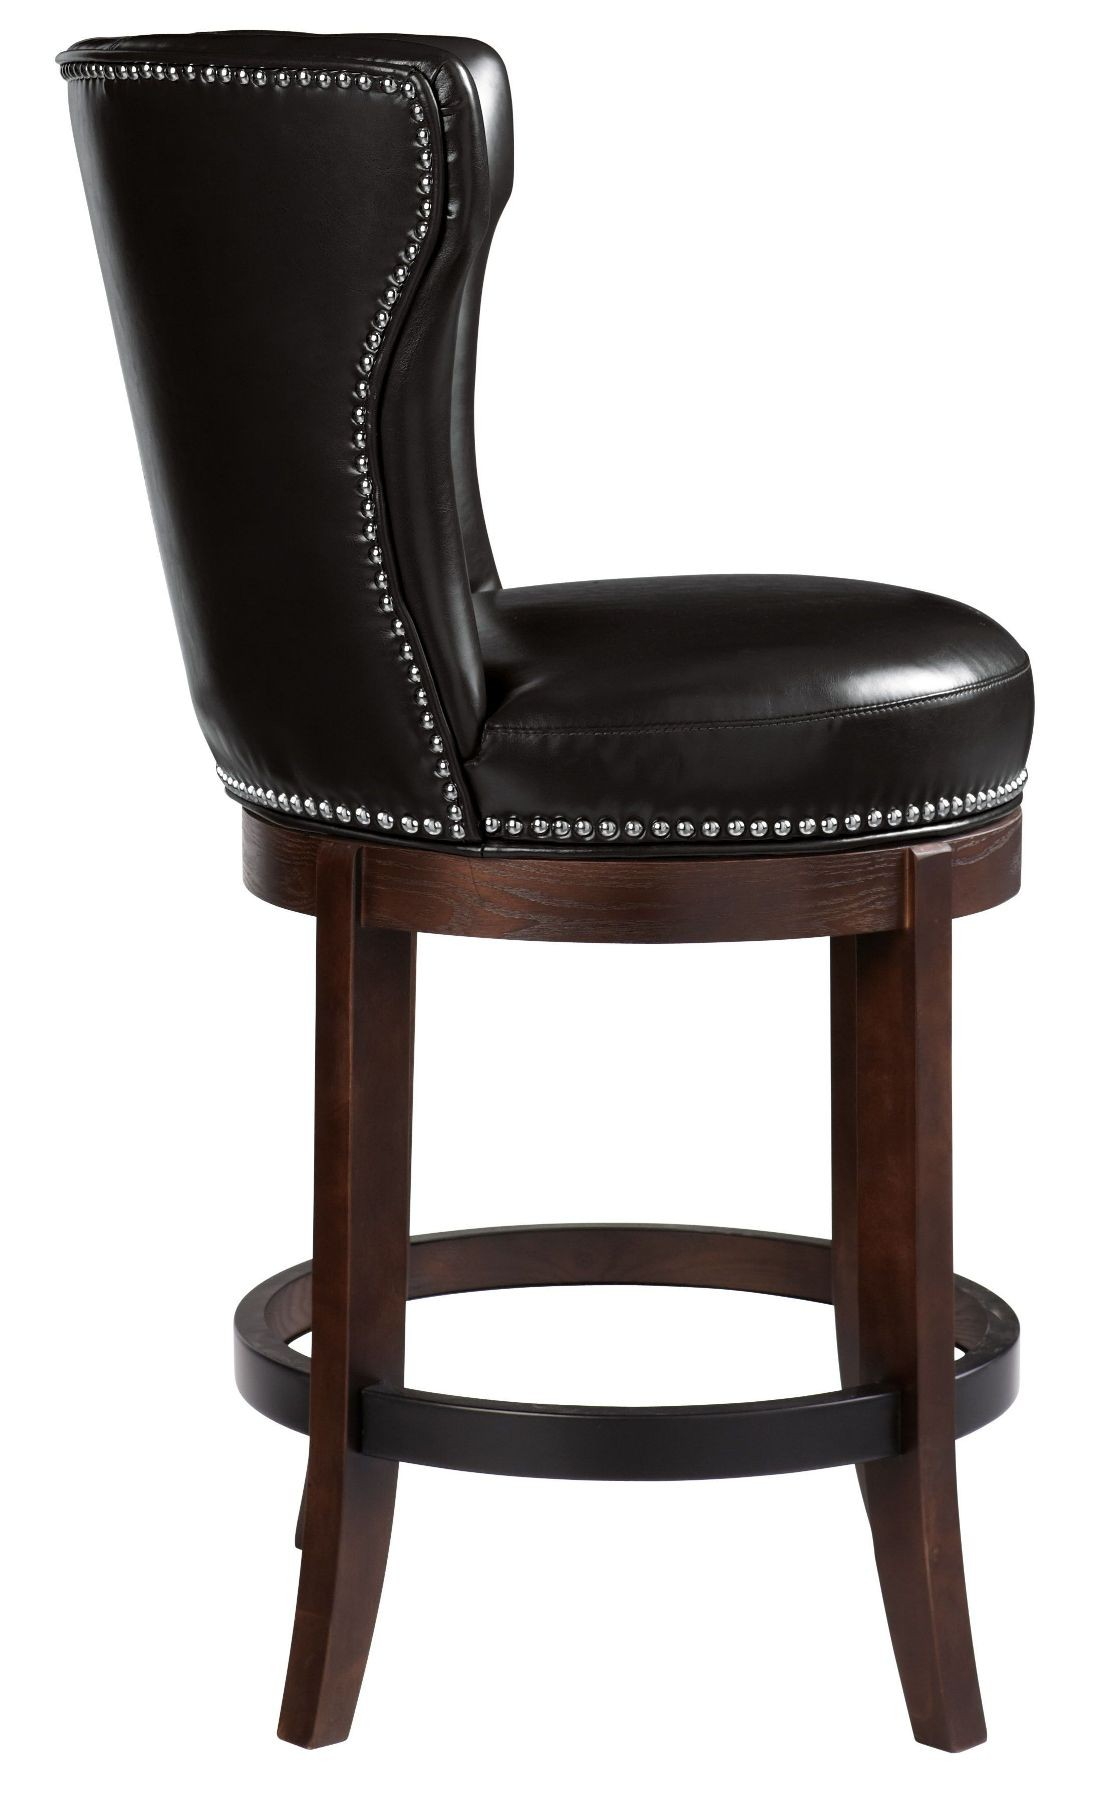 Tavern Black Swivel Barstool From Sunpan 64922 Coleman